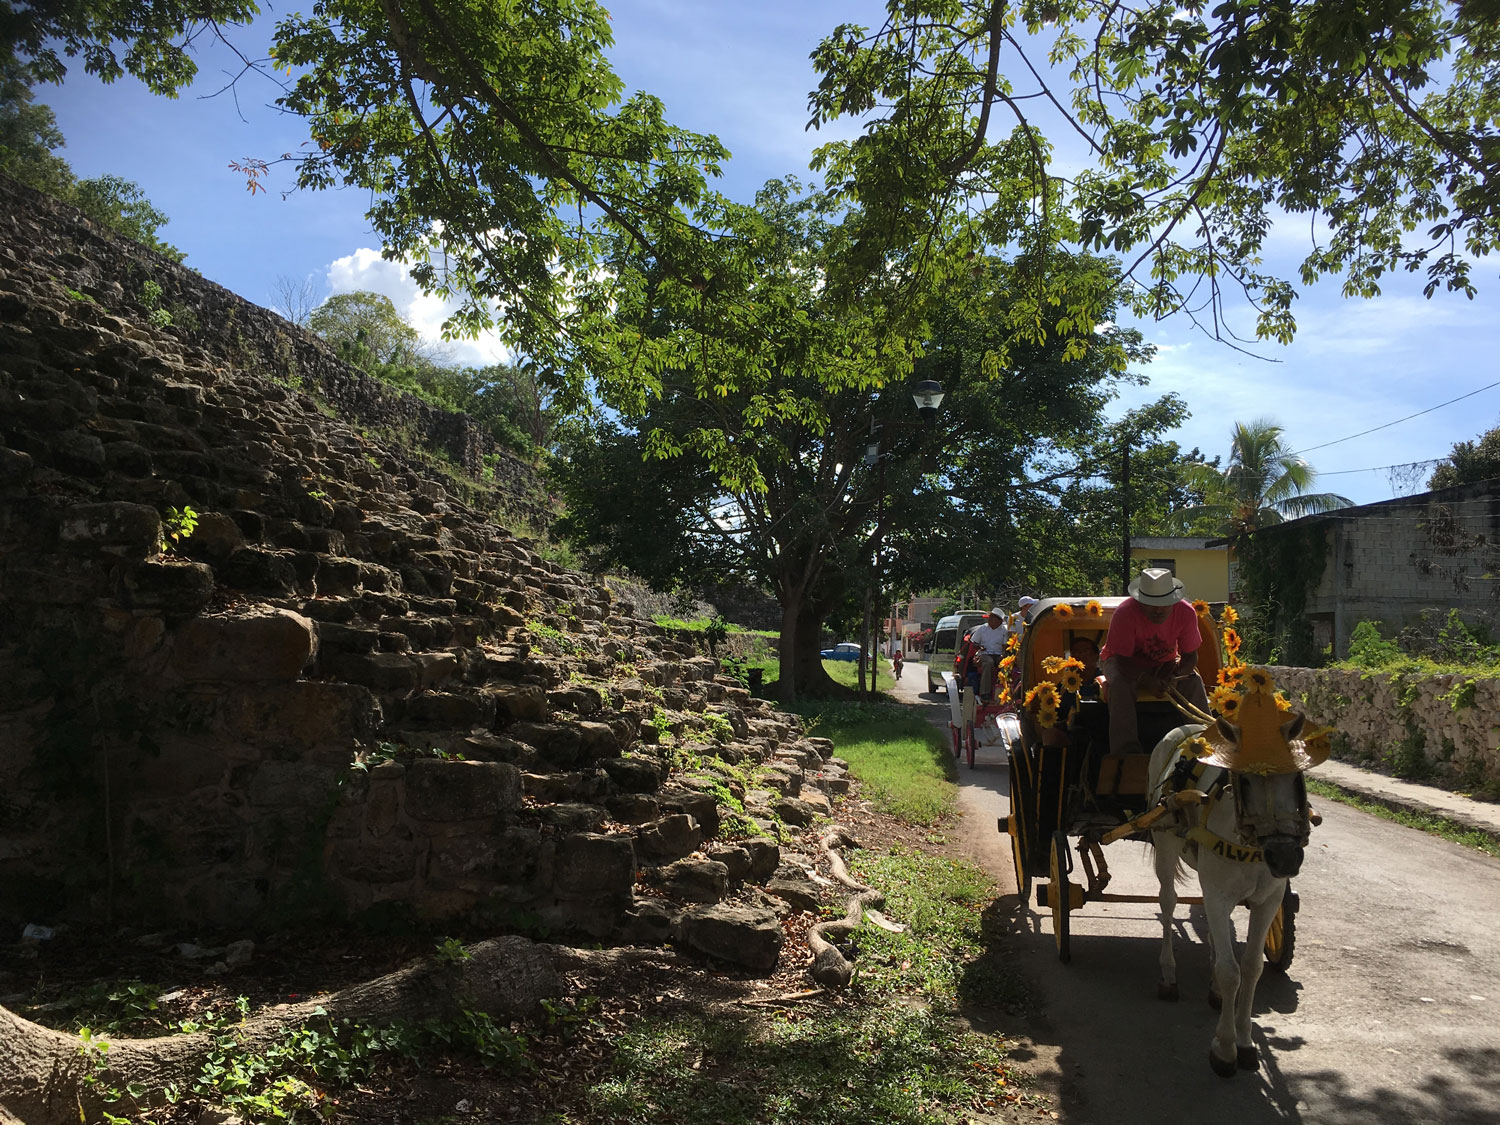 A horse carriage passing the base of the K'inich pyramid.